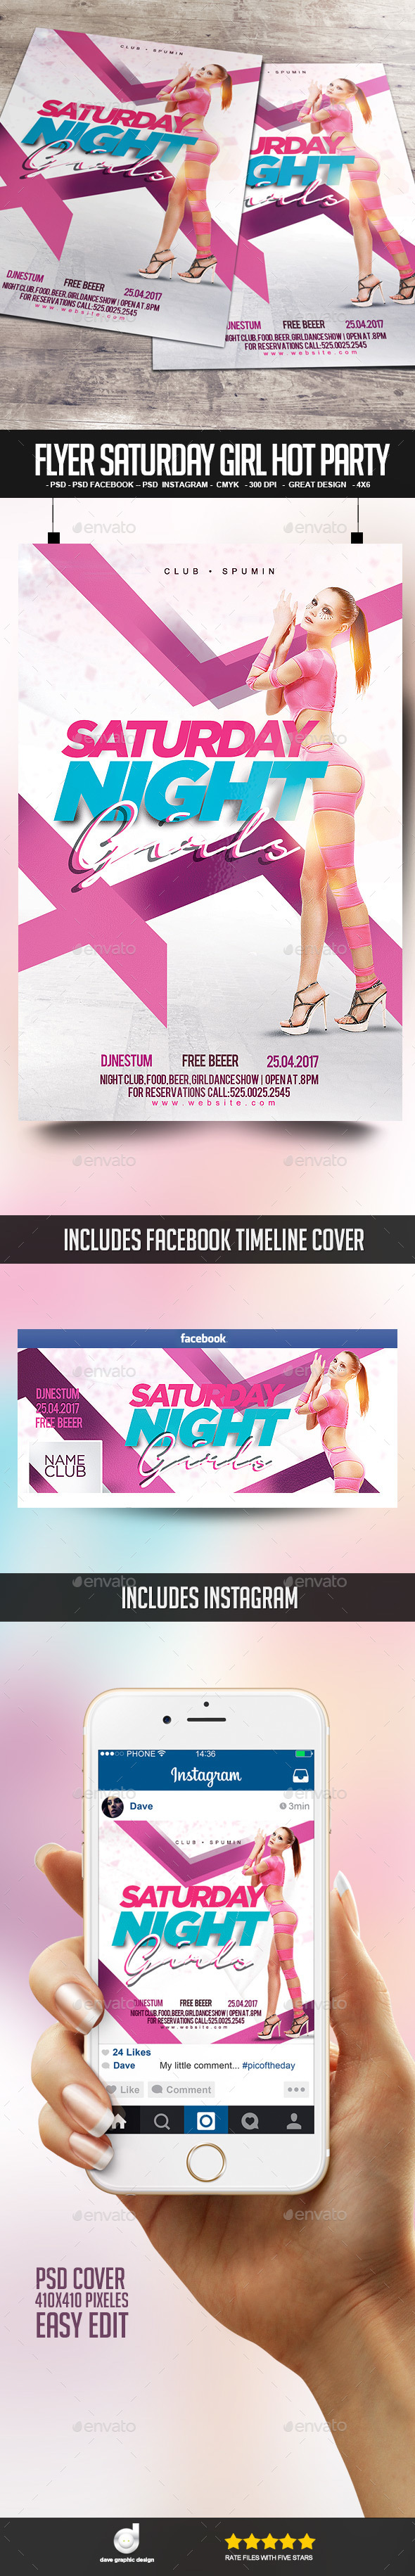 Flyer Saturday Girl Hot Party - Clubs & Parties Events